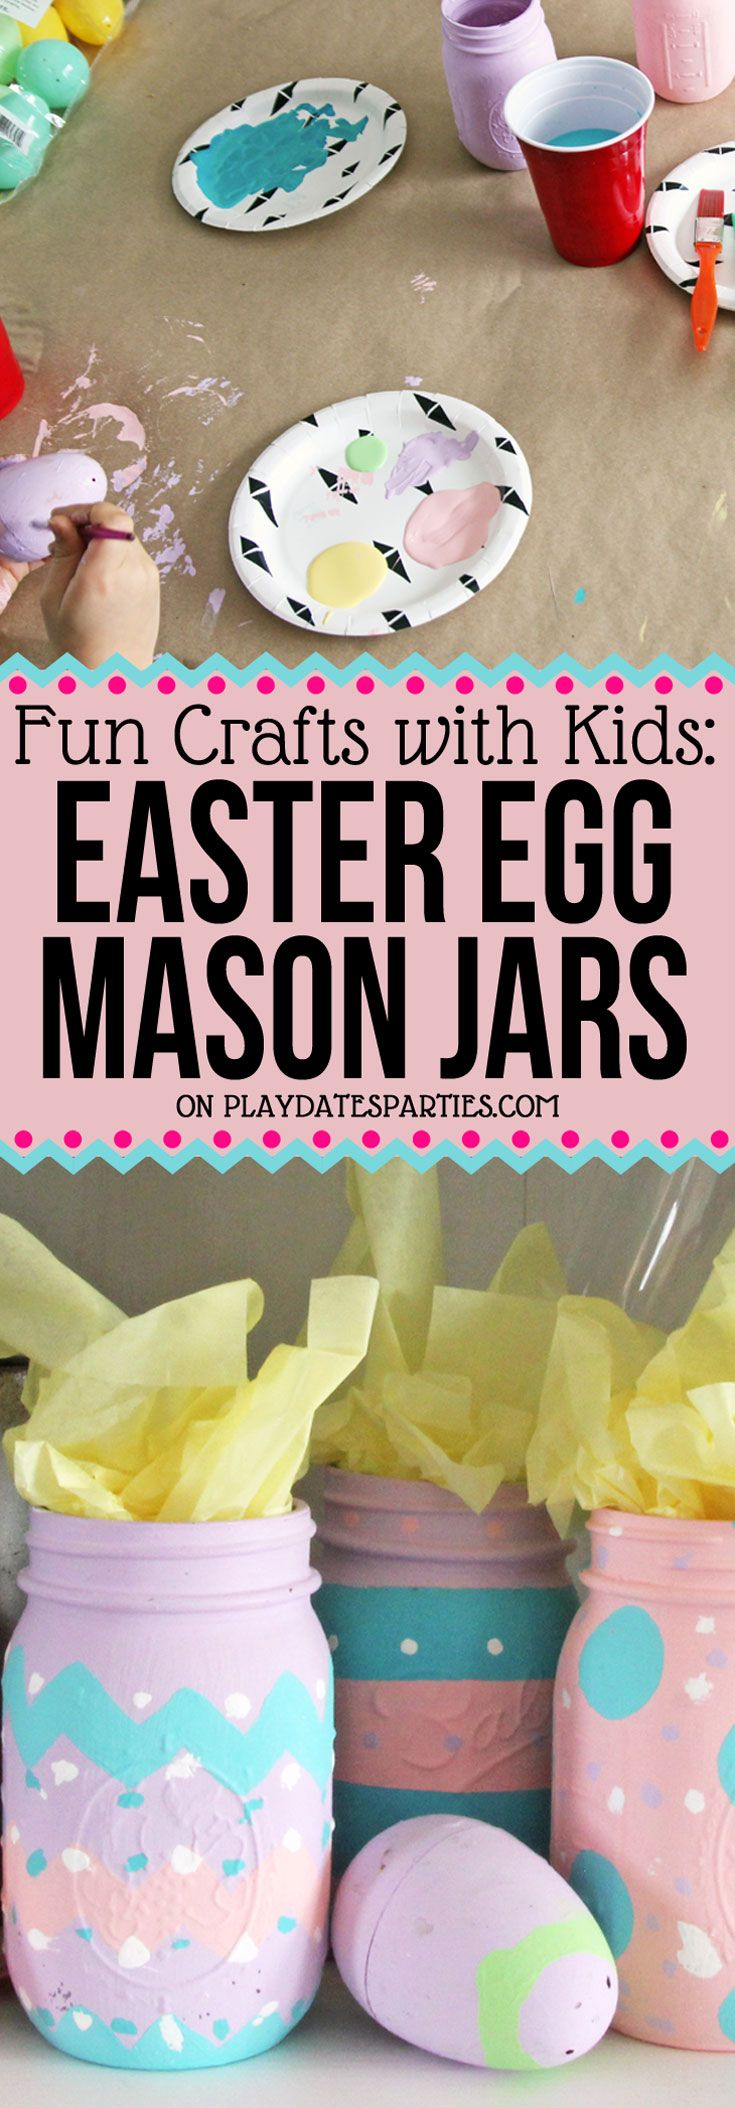 These adorable Easter egg mason jars are a fun craft to do with your kids this year. Click through to find out how to make them, and all the different ways you can use them throughout the years.  via playdatesparties.com   #DIY #kids #crafts #Easter